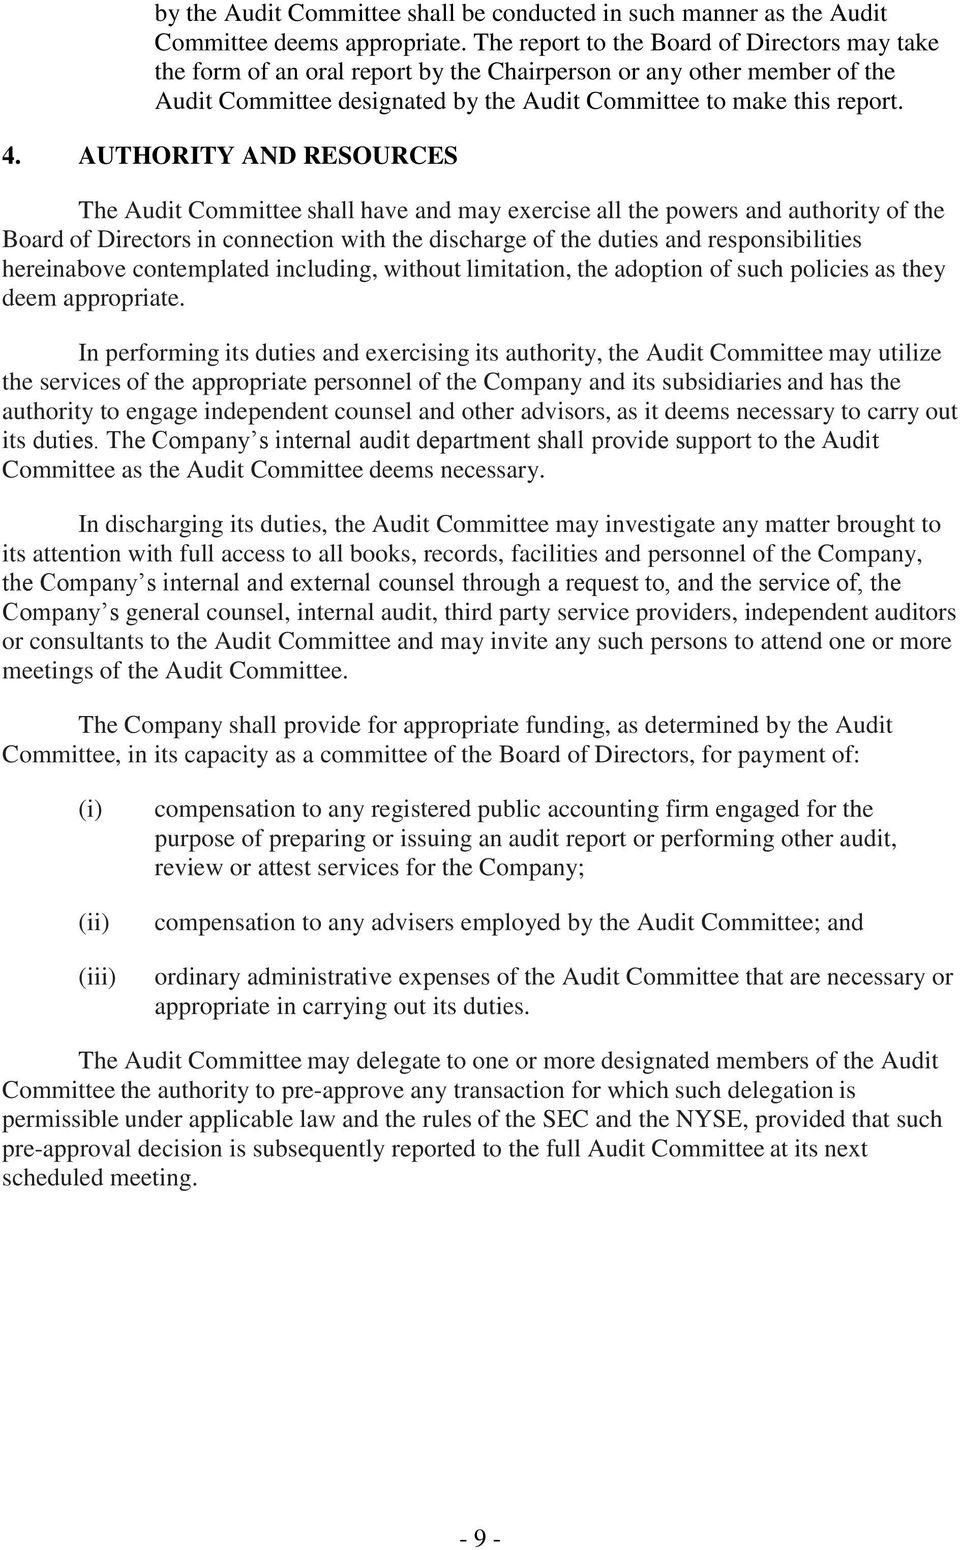 AUTHORITY AND RESOURCES The Audit Committee shall have and may exercise all the powers and authority of the Board of Directors in connection with the discharge of the duties and responsibilities